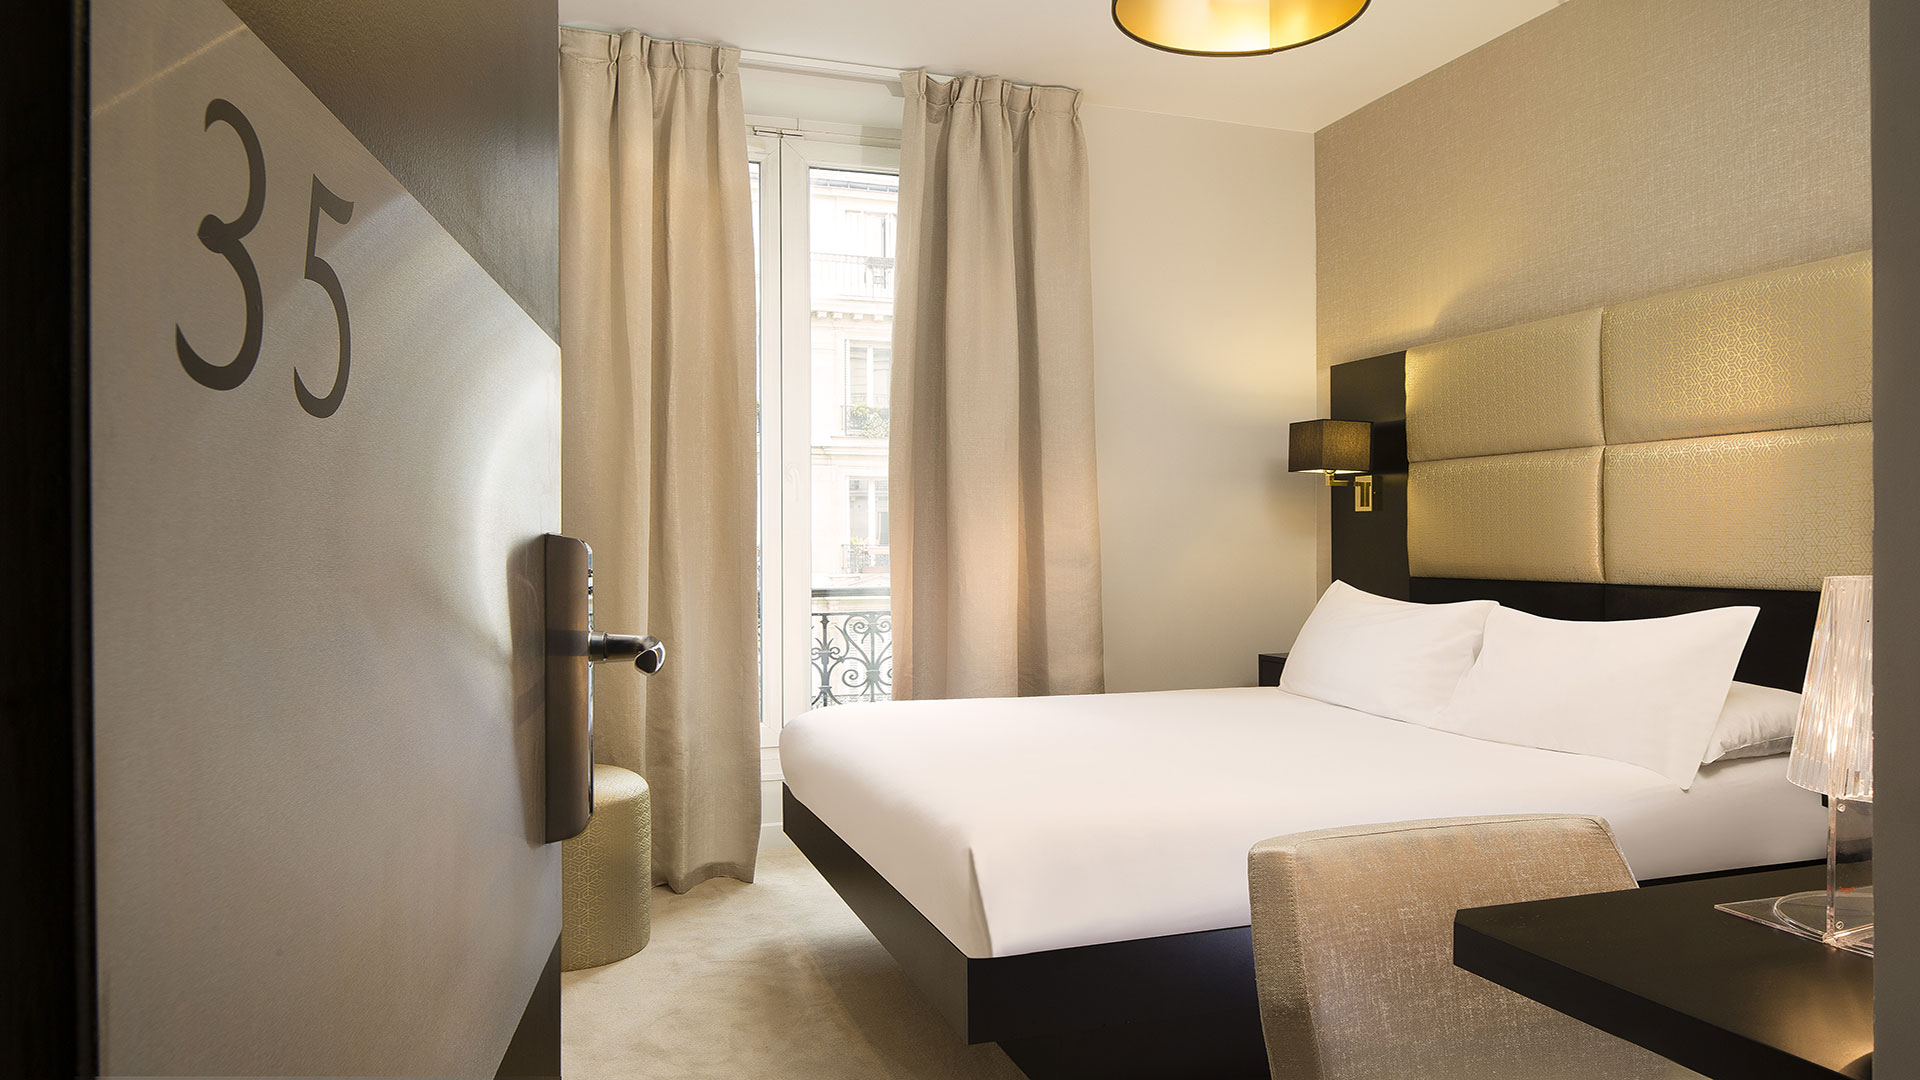 H tel dans le 3 me arrondissement de paris chambre d for Hotel design paris 3eme